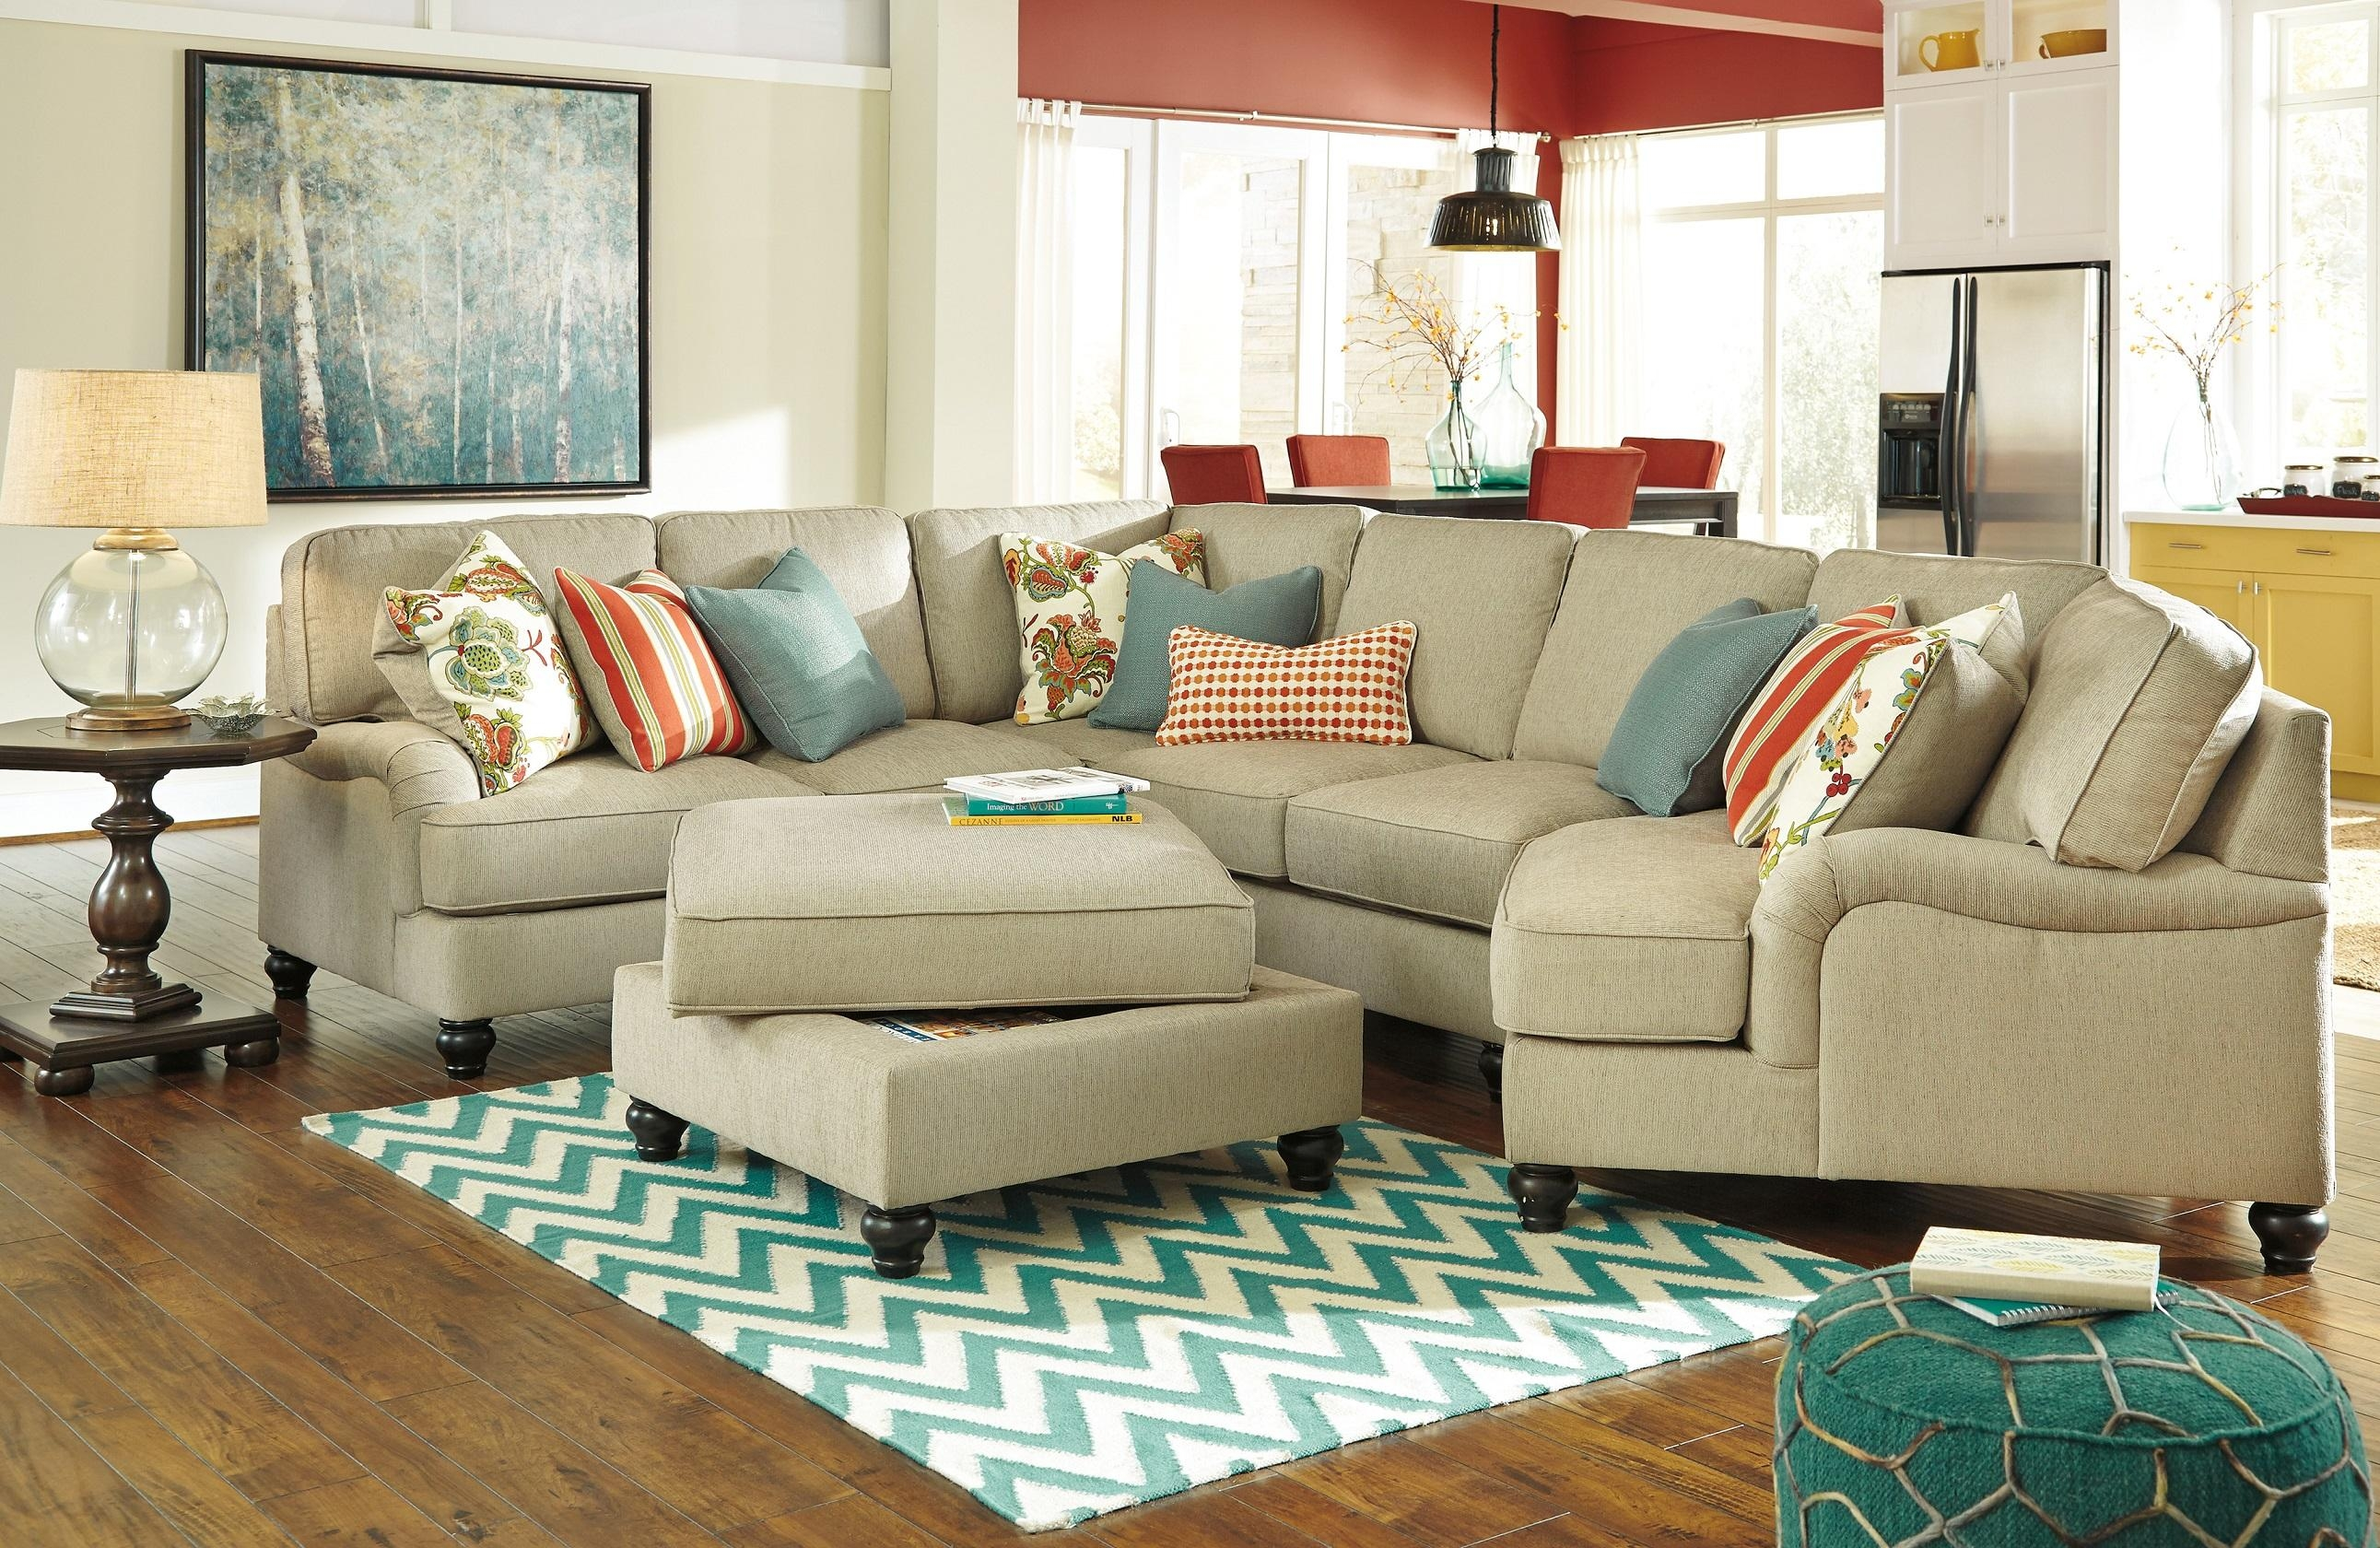 Sofas Center : Sectional Sofas Ashley Furniture Excellent Faux Regarding Ashley Furniture Leather Sectional Sofas (View 20 of 20)